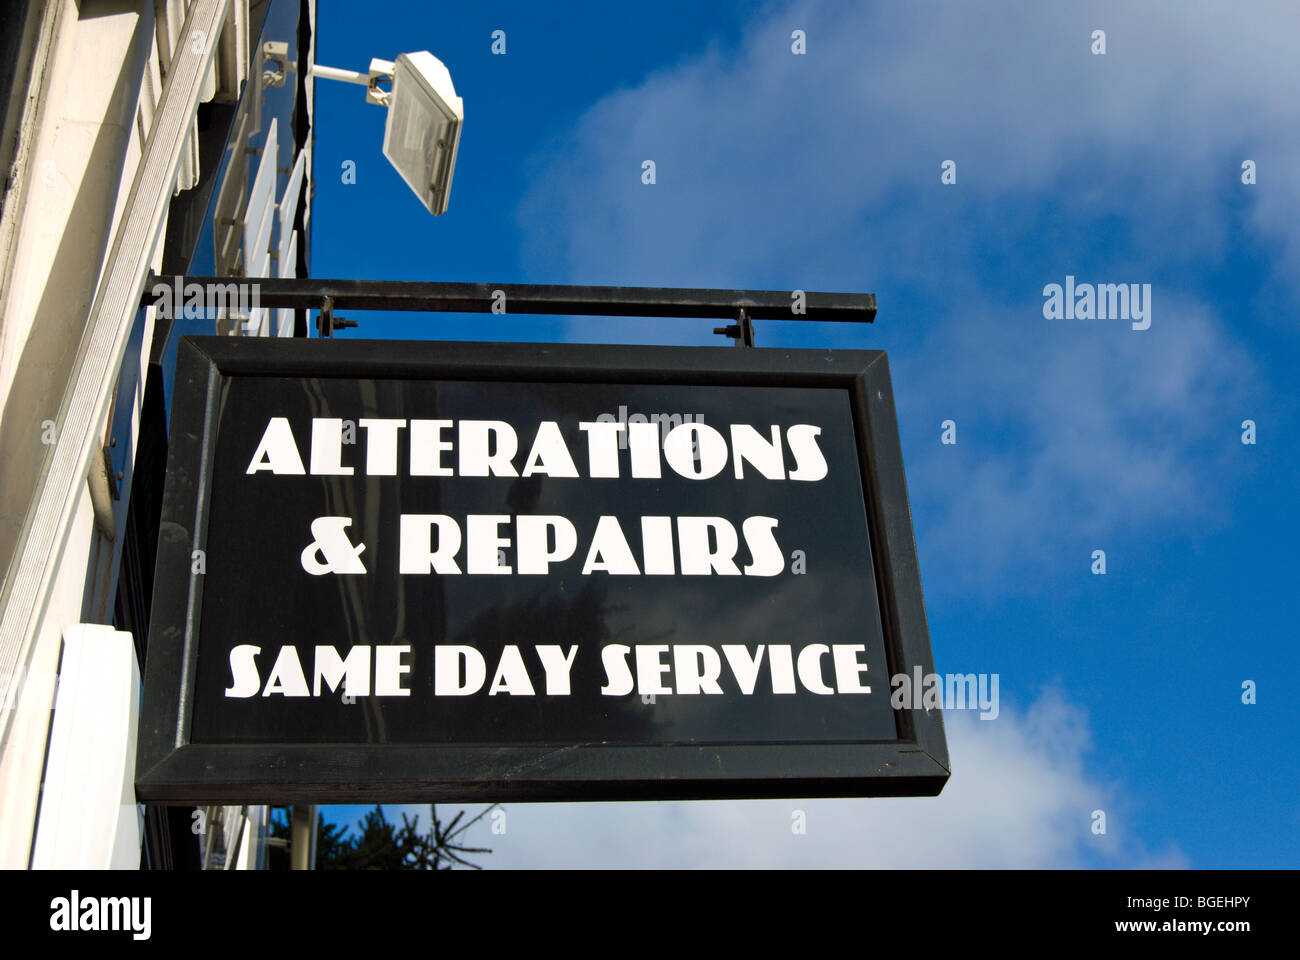 alterations and repairs sign outside a clothing shop in wimbledon, southwest london, england - Stock Image